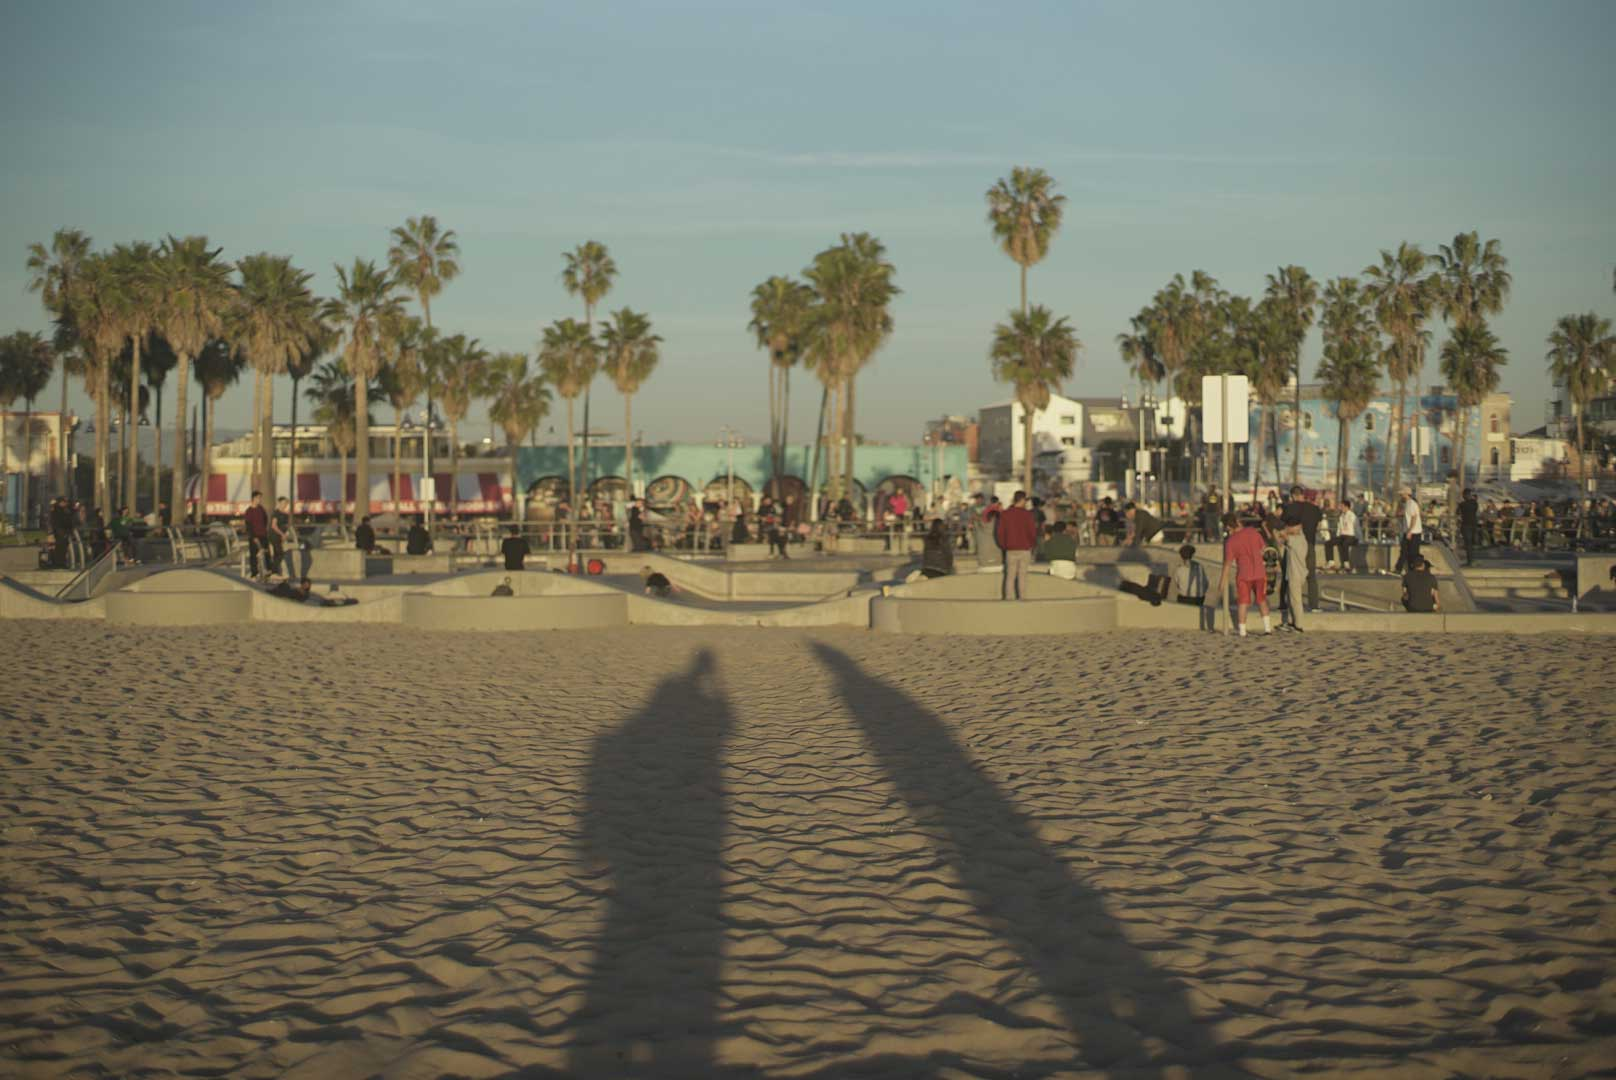 THINGS_TO_DO_IN_LA_VENICE_BEACH_3.jpg